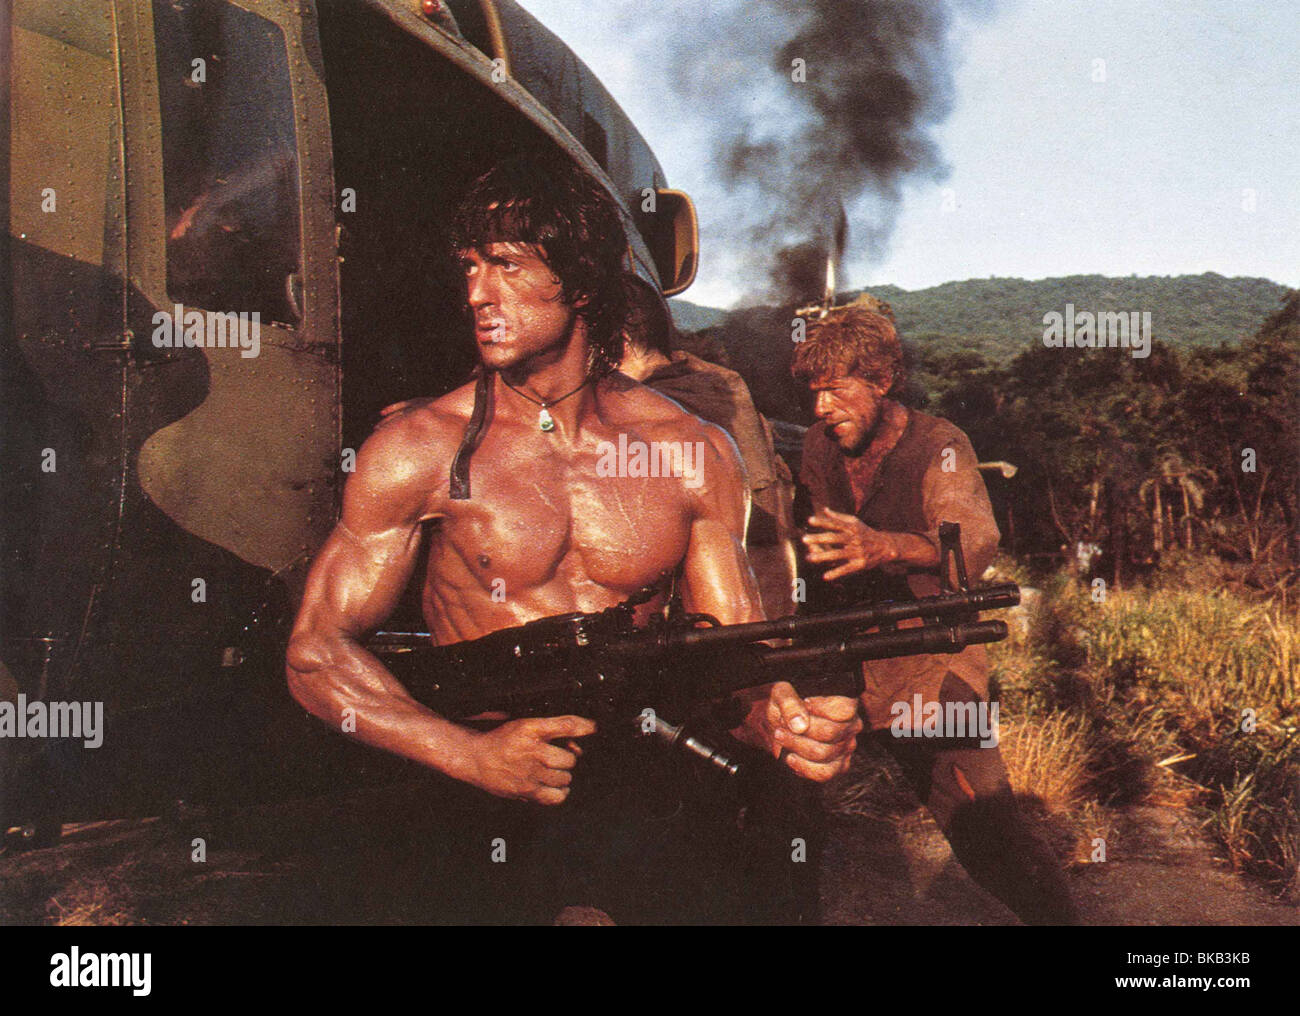 RAMBO: FIRST BLOOD PART 2 (1985) SYLVESTER STALLONE RFB 002FOH - Stock Image